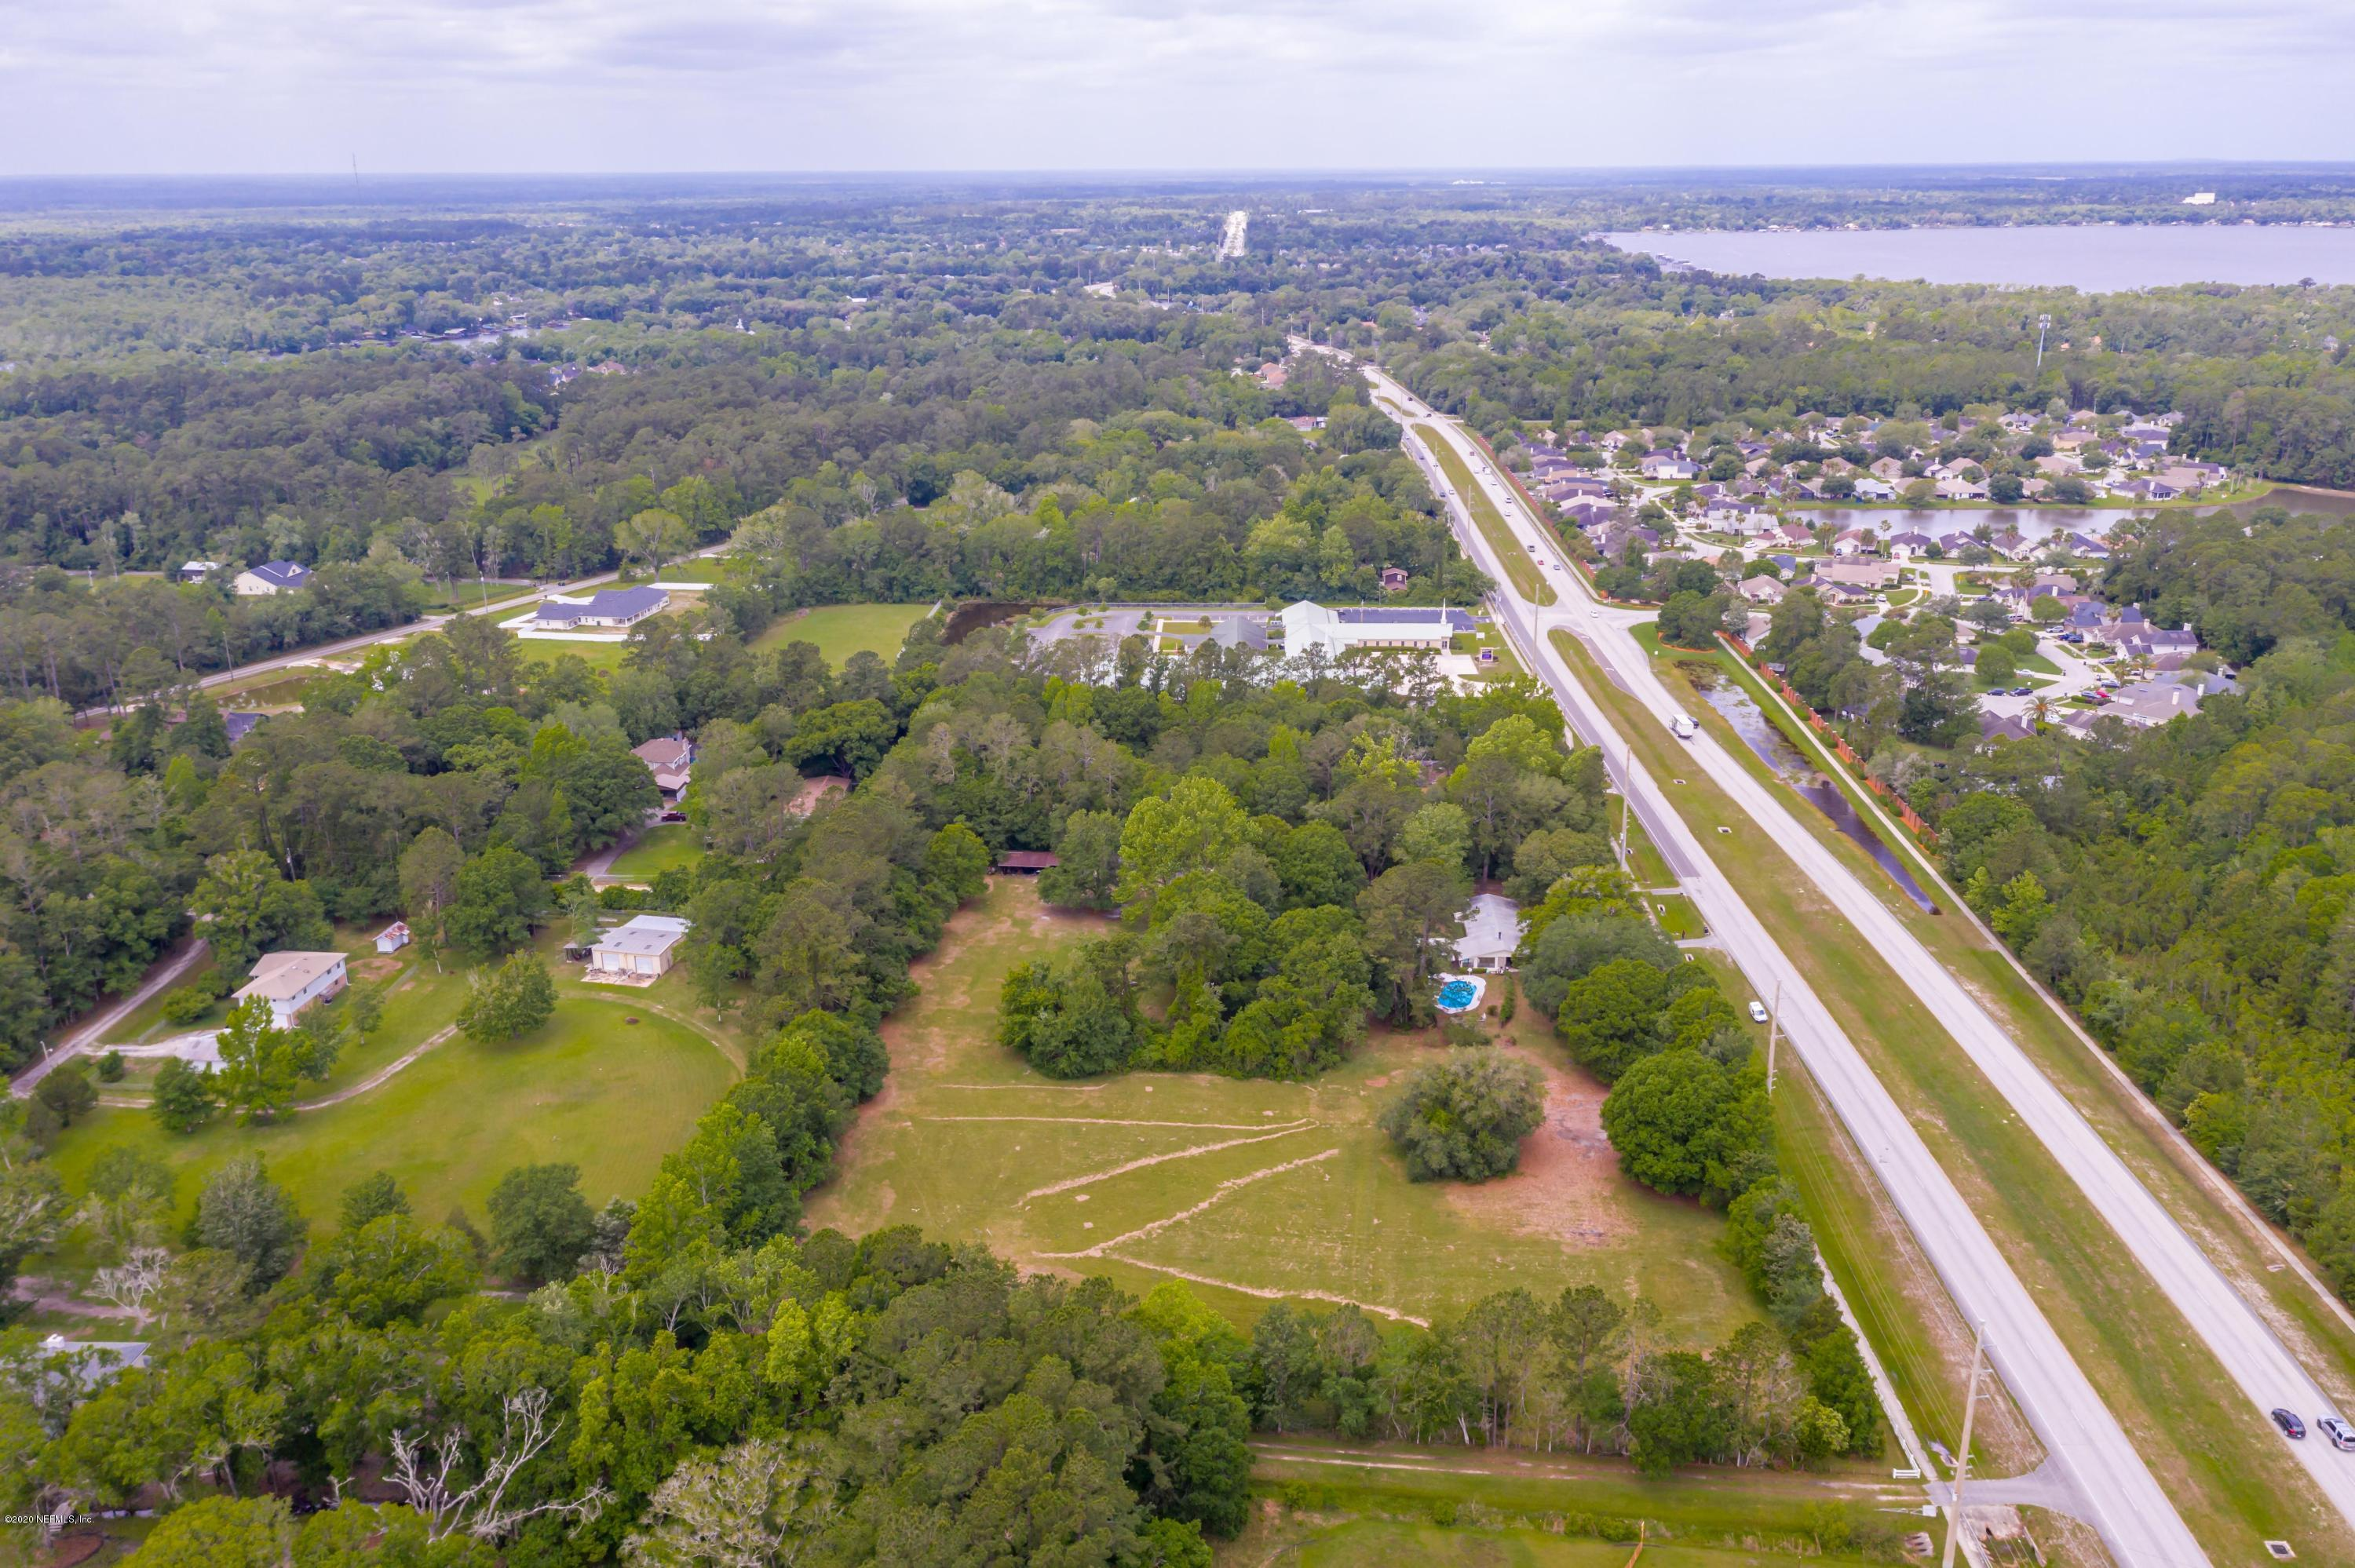 1843 COUNTY RD 220, FLEMING ISLAND, FLORIDA 32003, 3 Bedrooms Bedrooms, ,2 BathroomsBathrooms,Residential,For sale,COUNTY RD 220,1049307